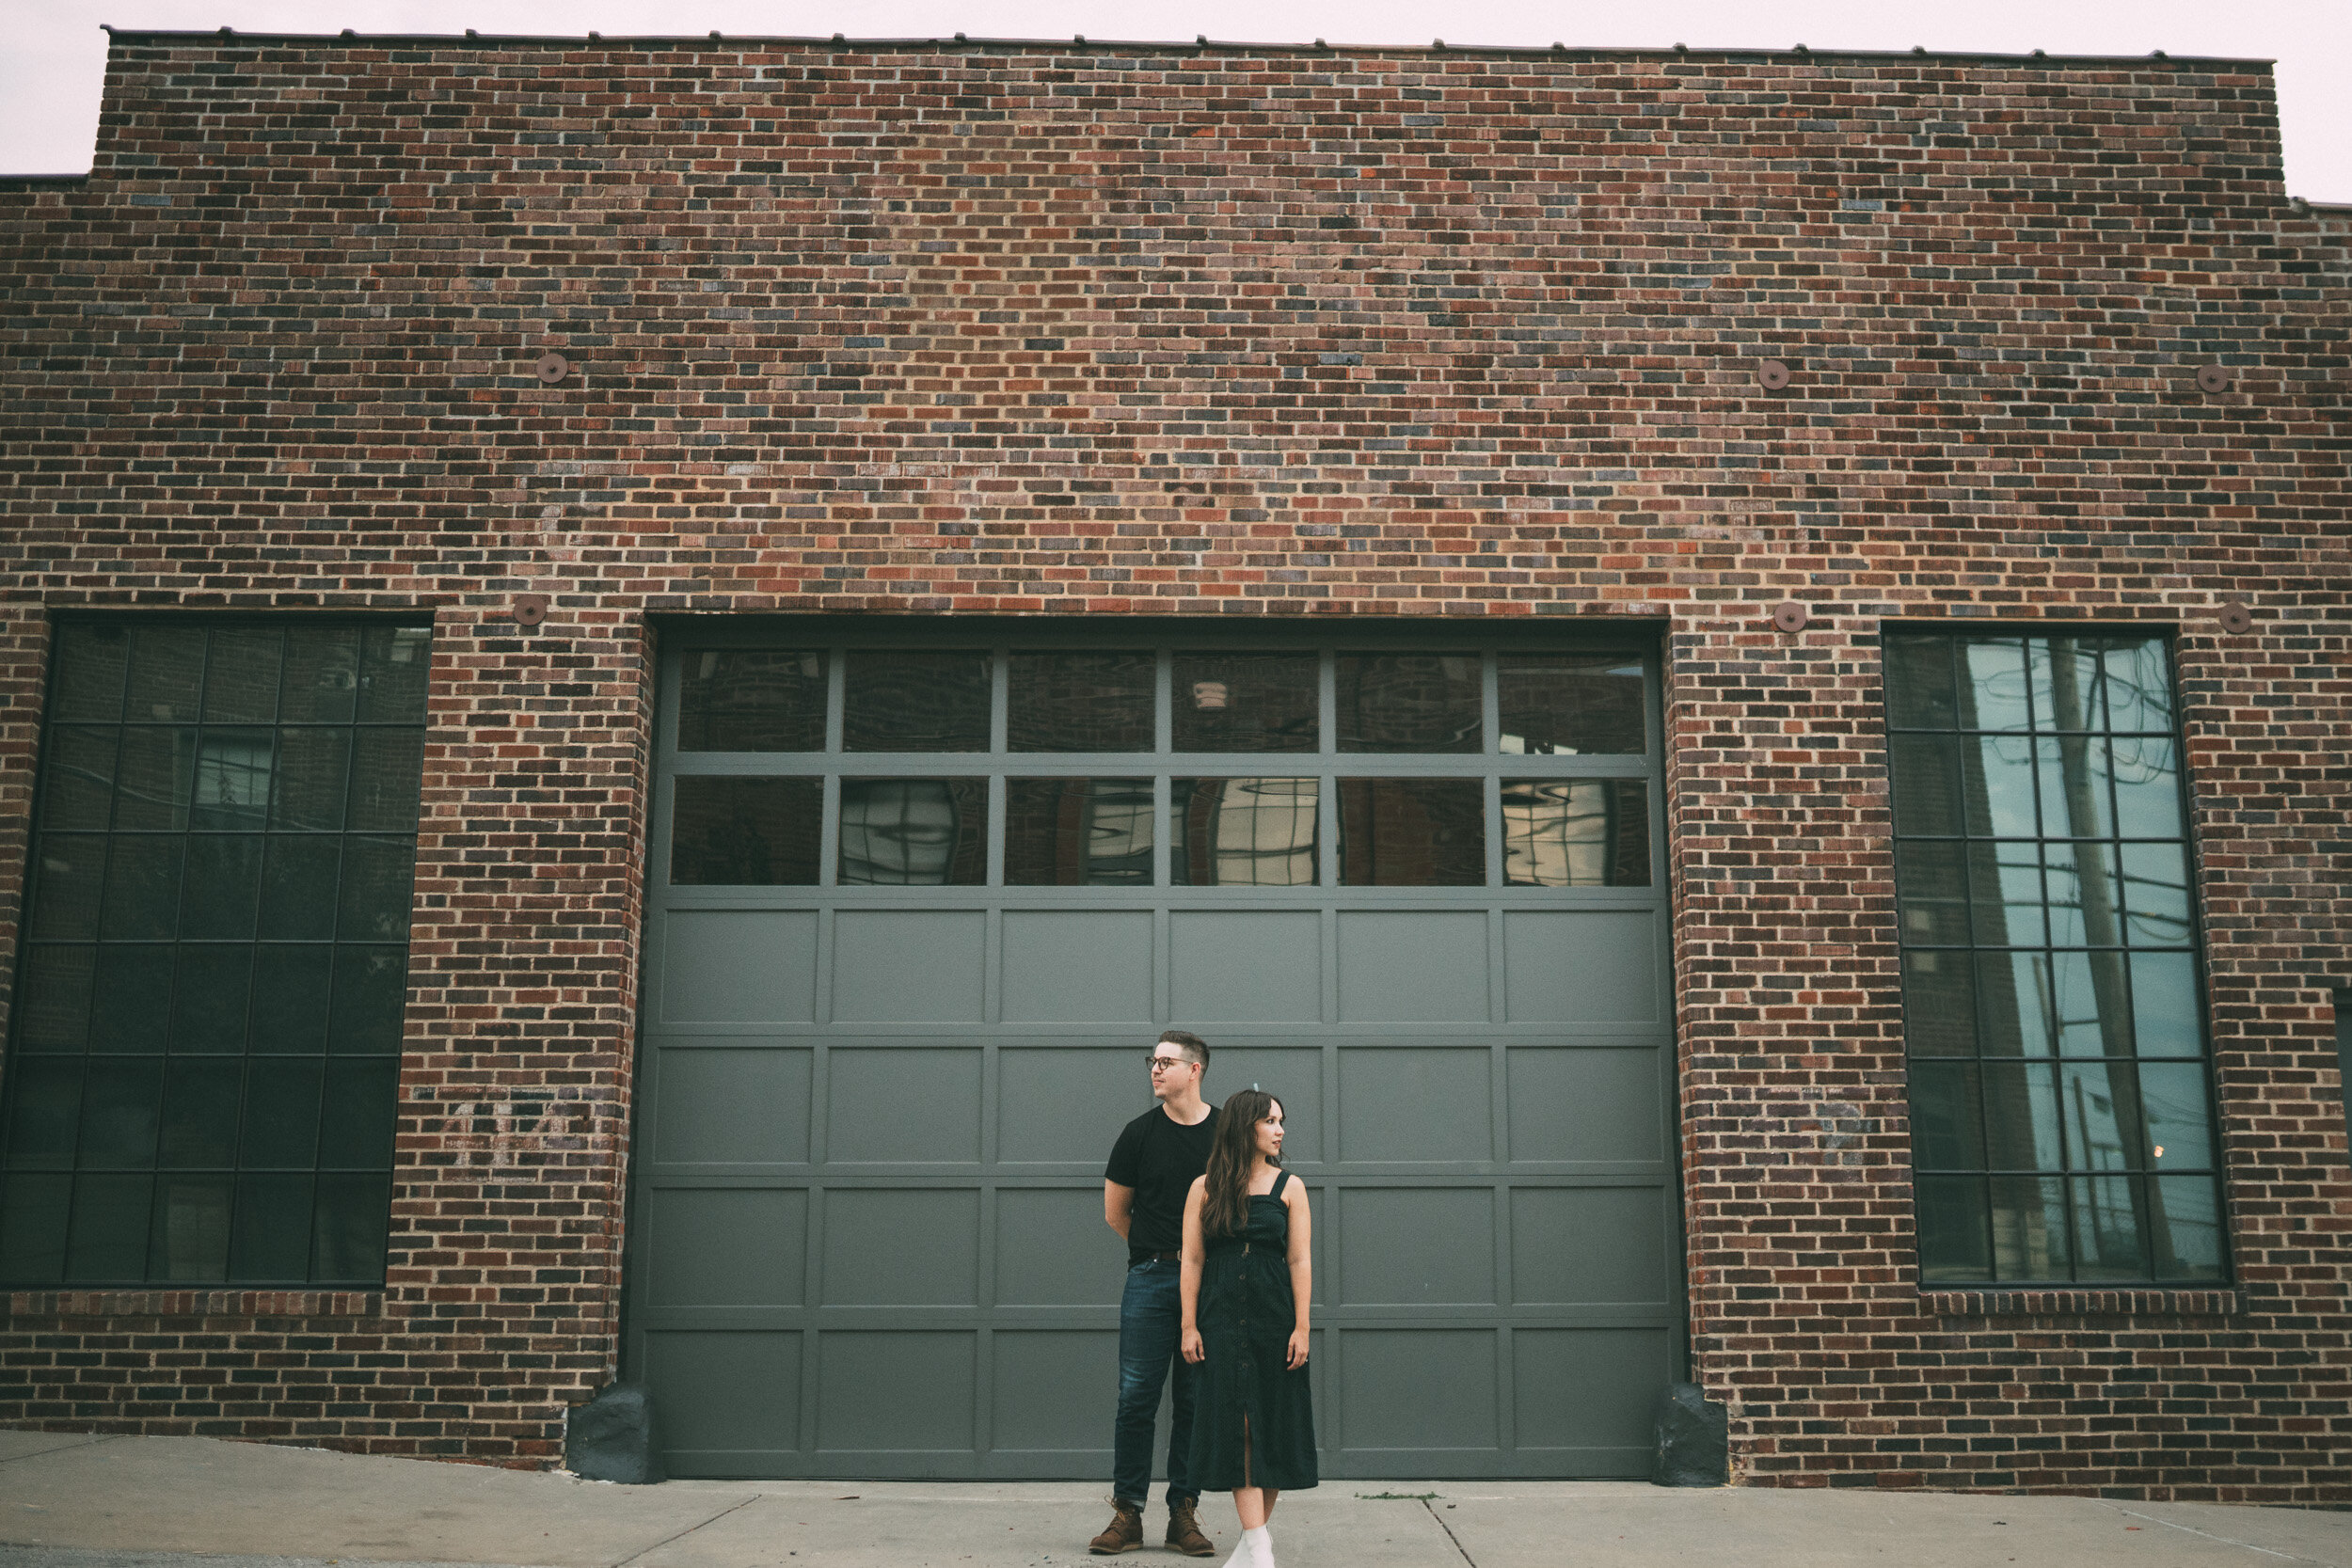 engagement session photos couple in front of garage door in brick building